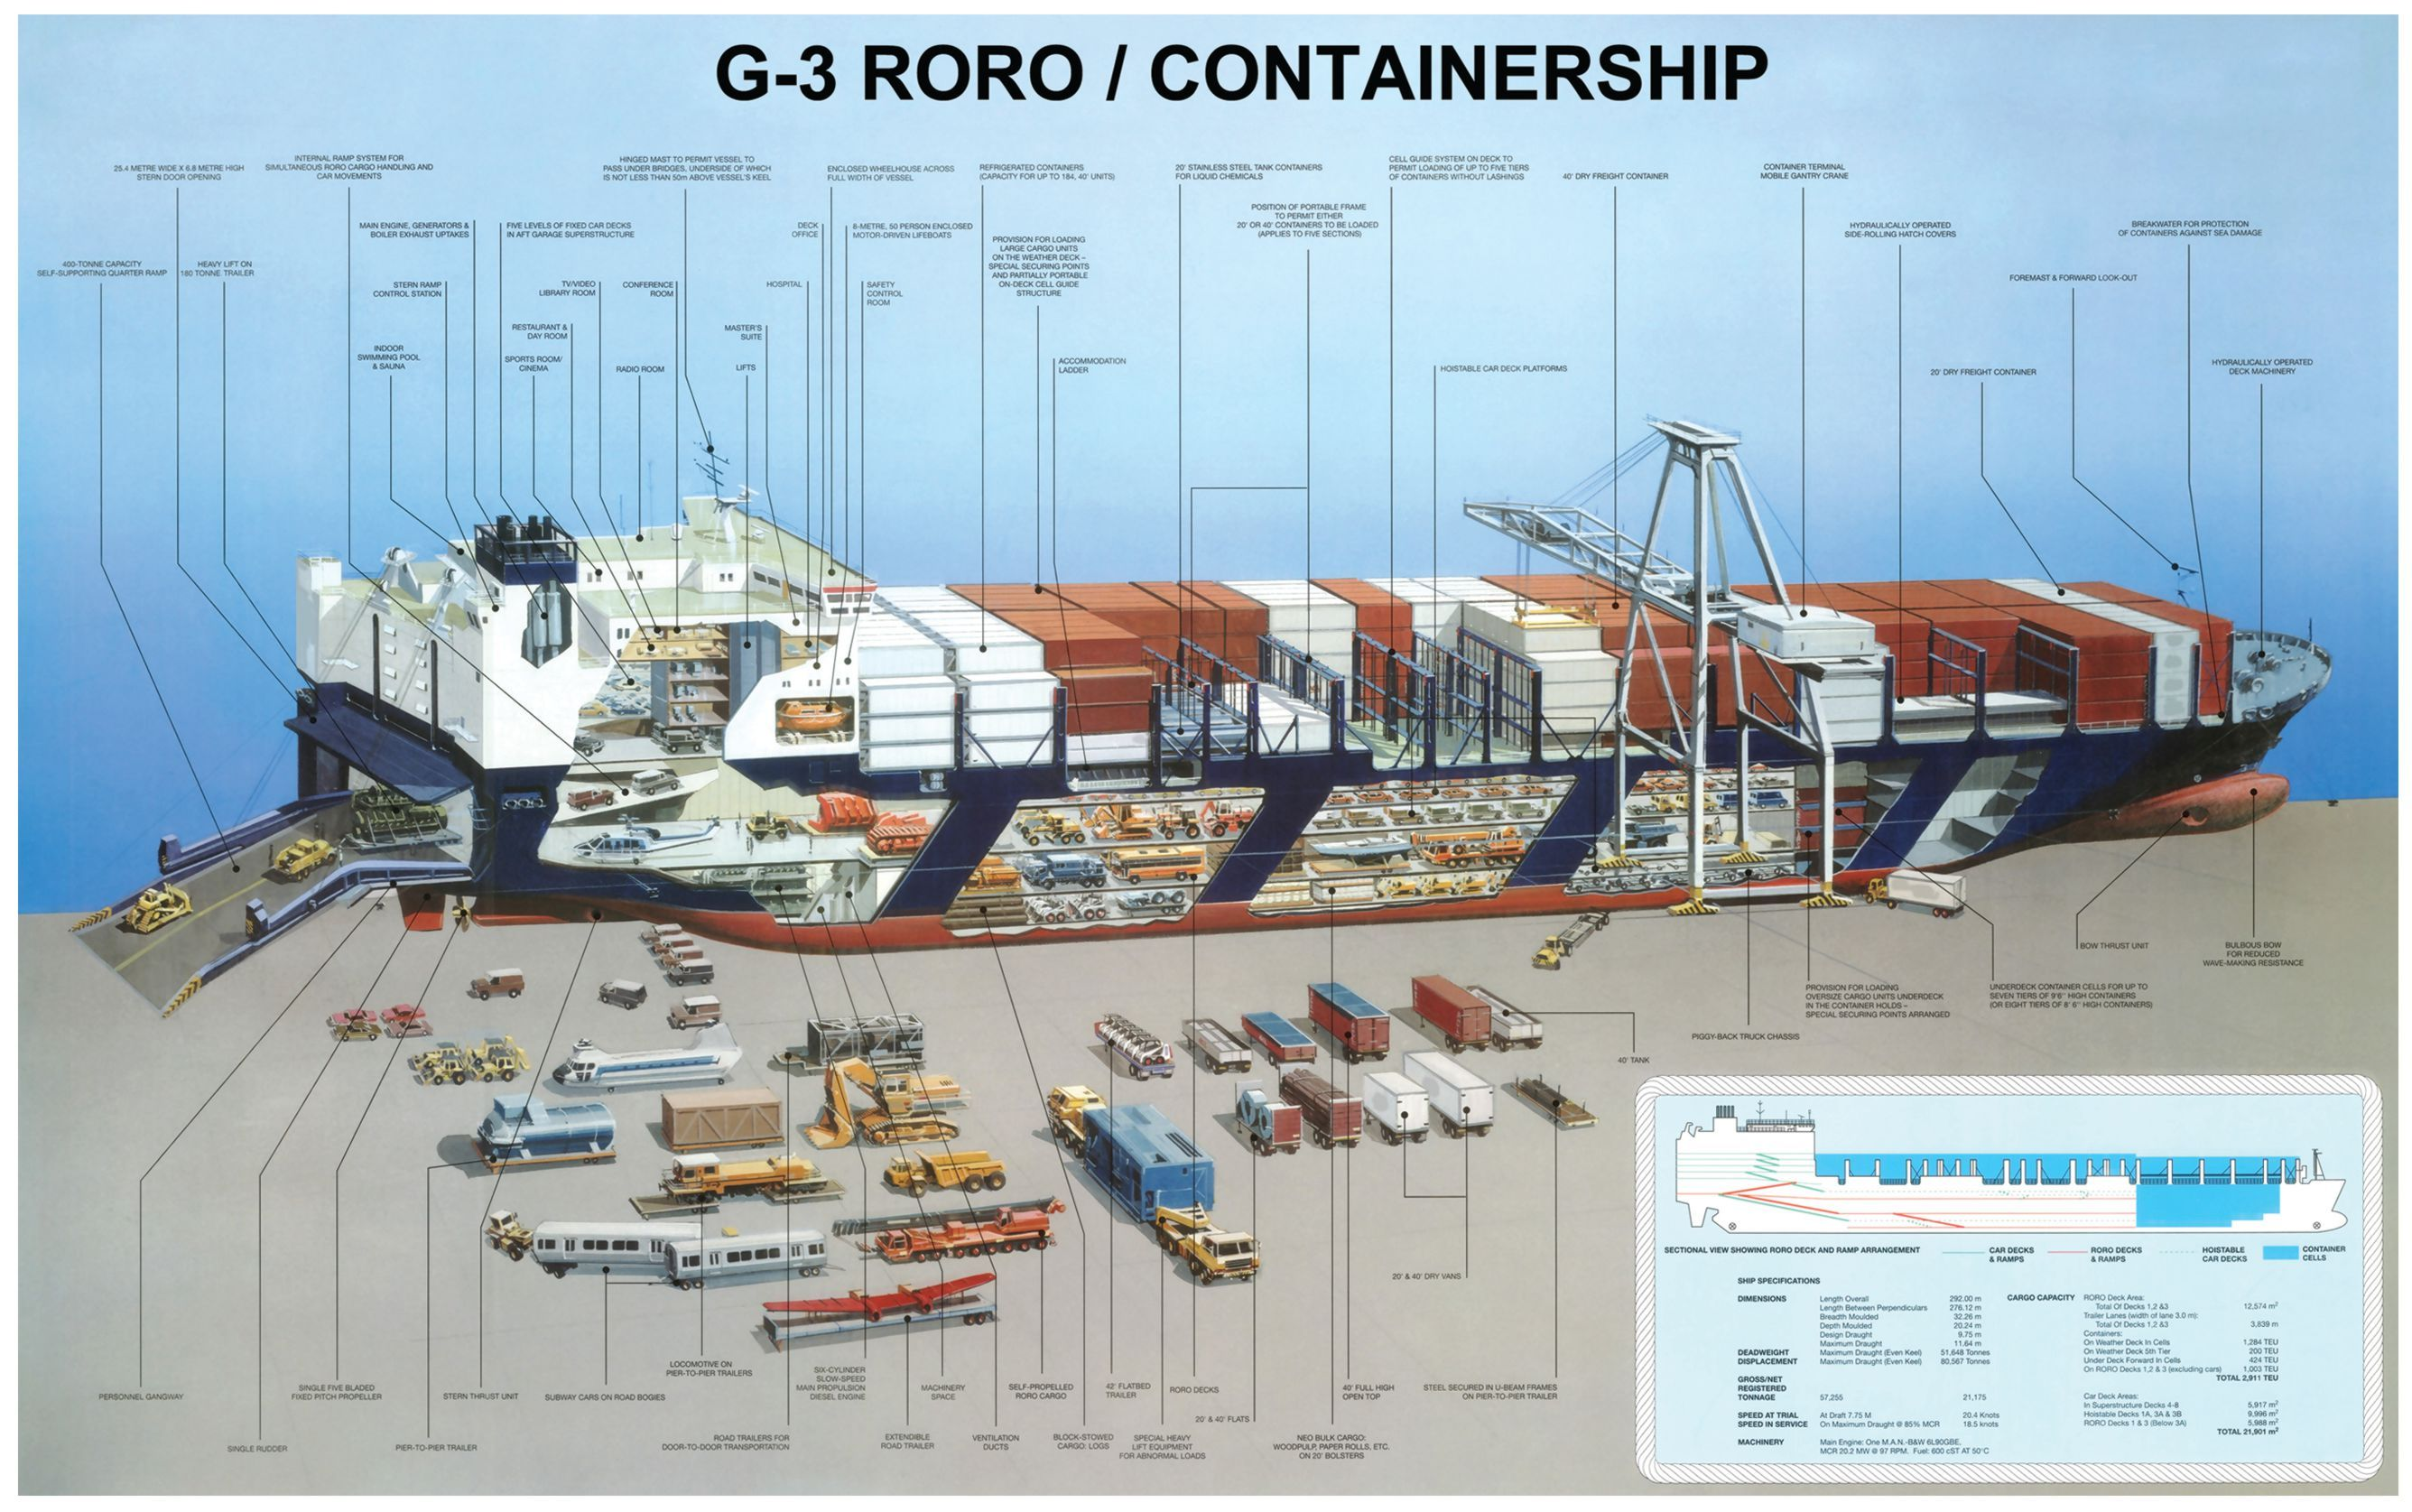 medium resolution of g 3 roro container ship cutaway drawing